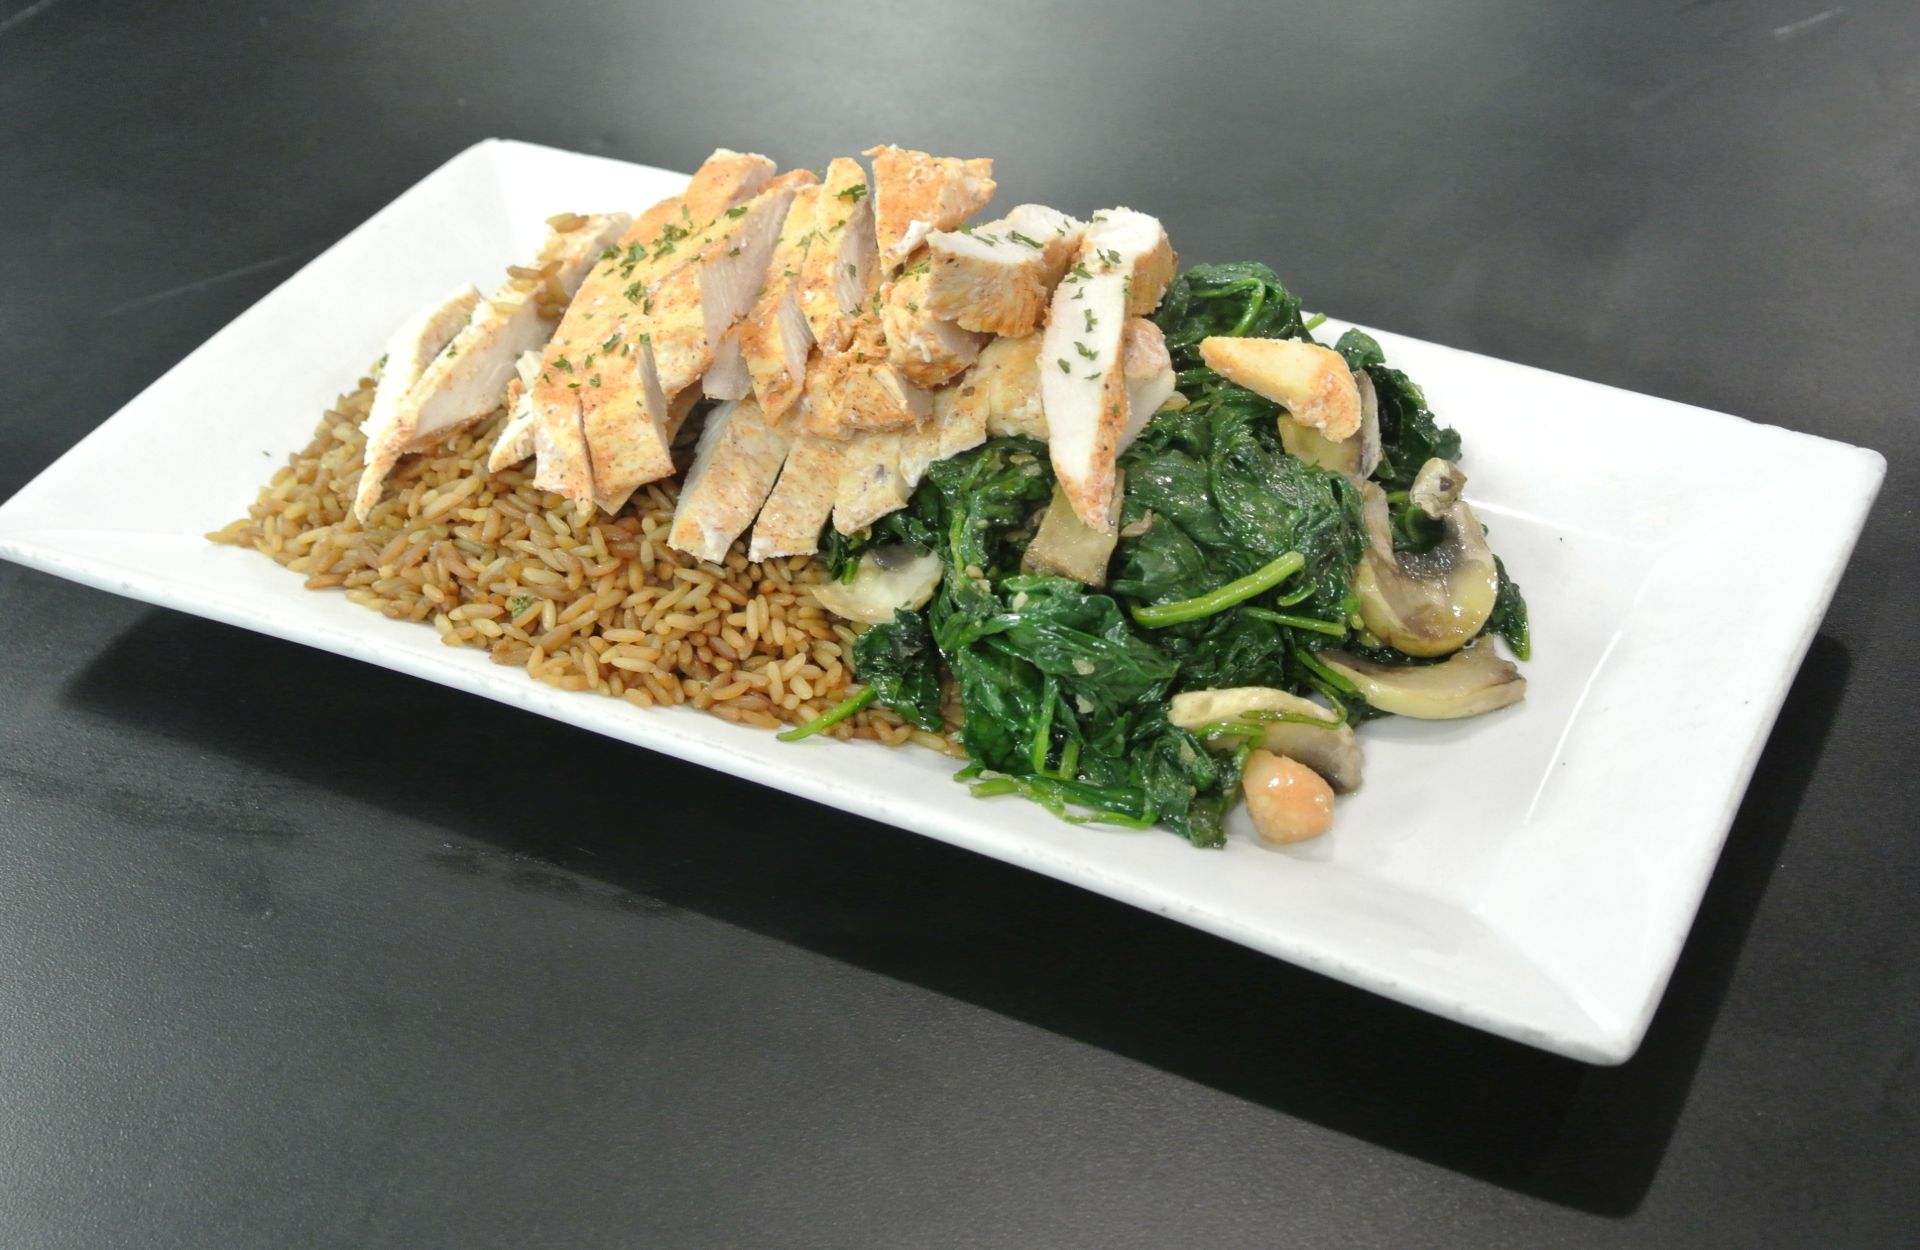 Grilled chicken over brown rice with sauteed spinach and mushrooms